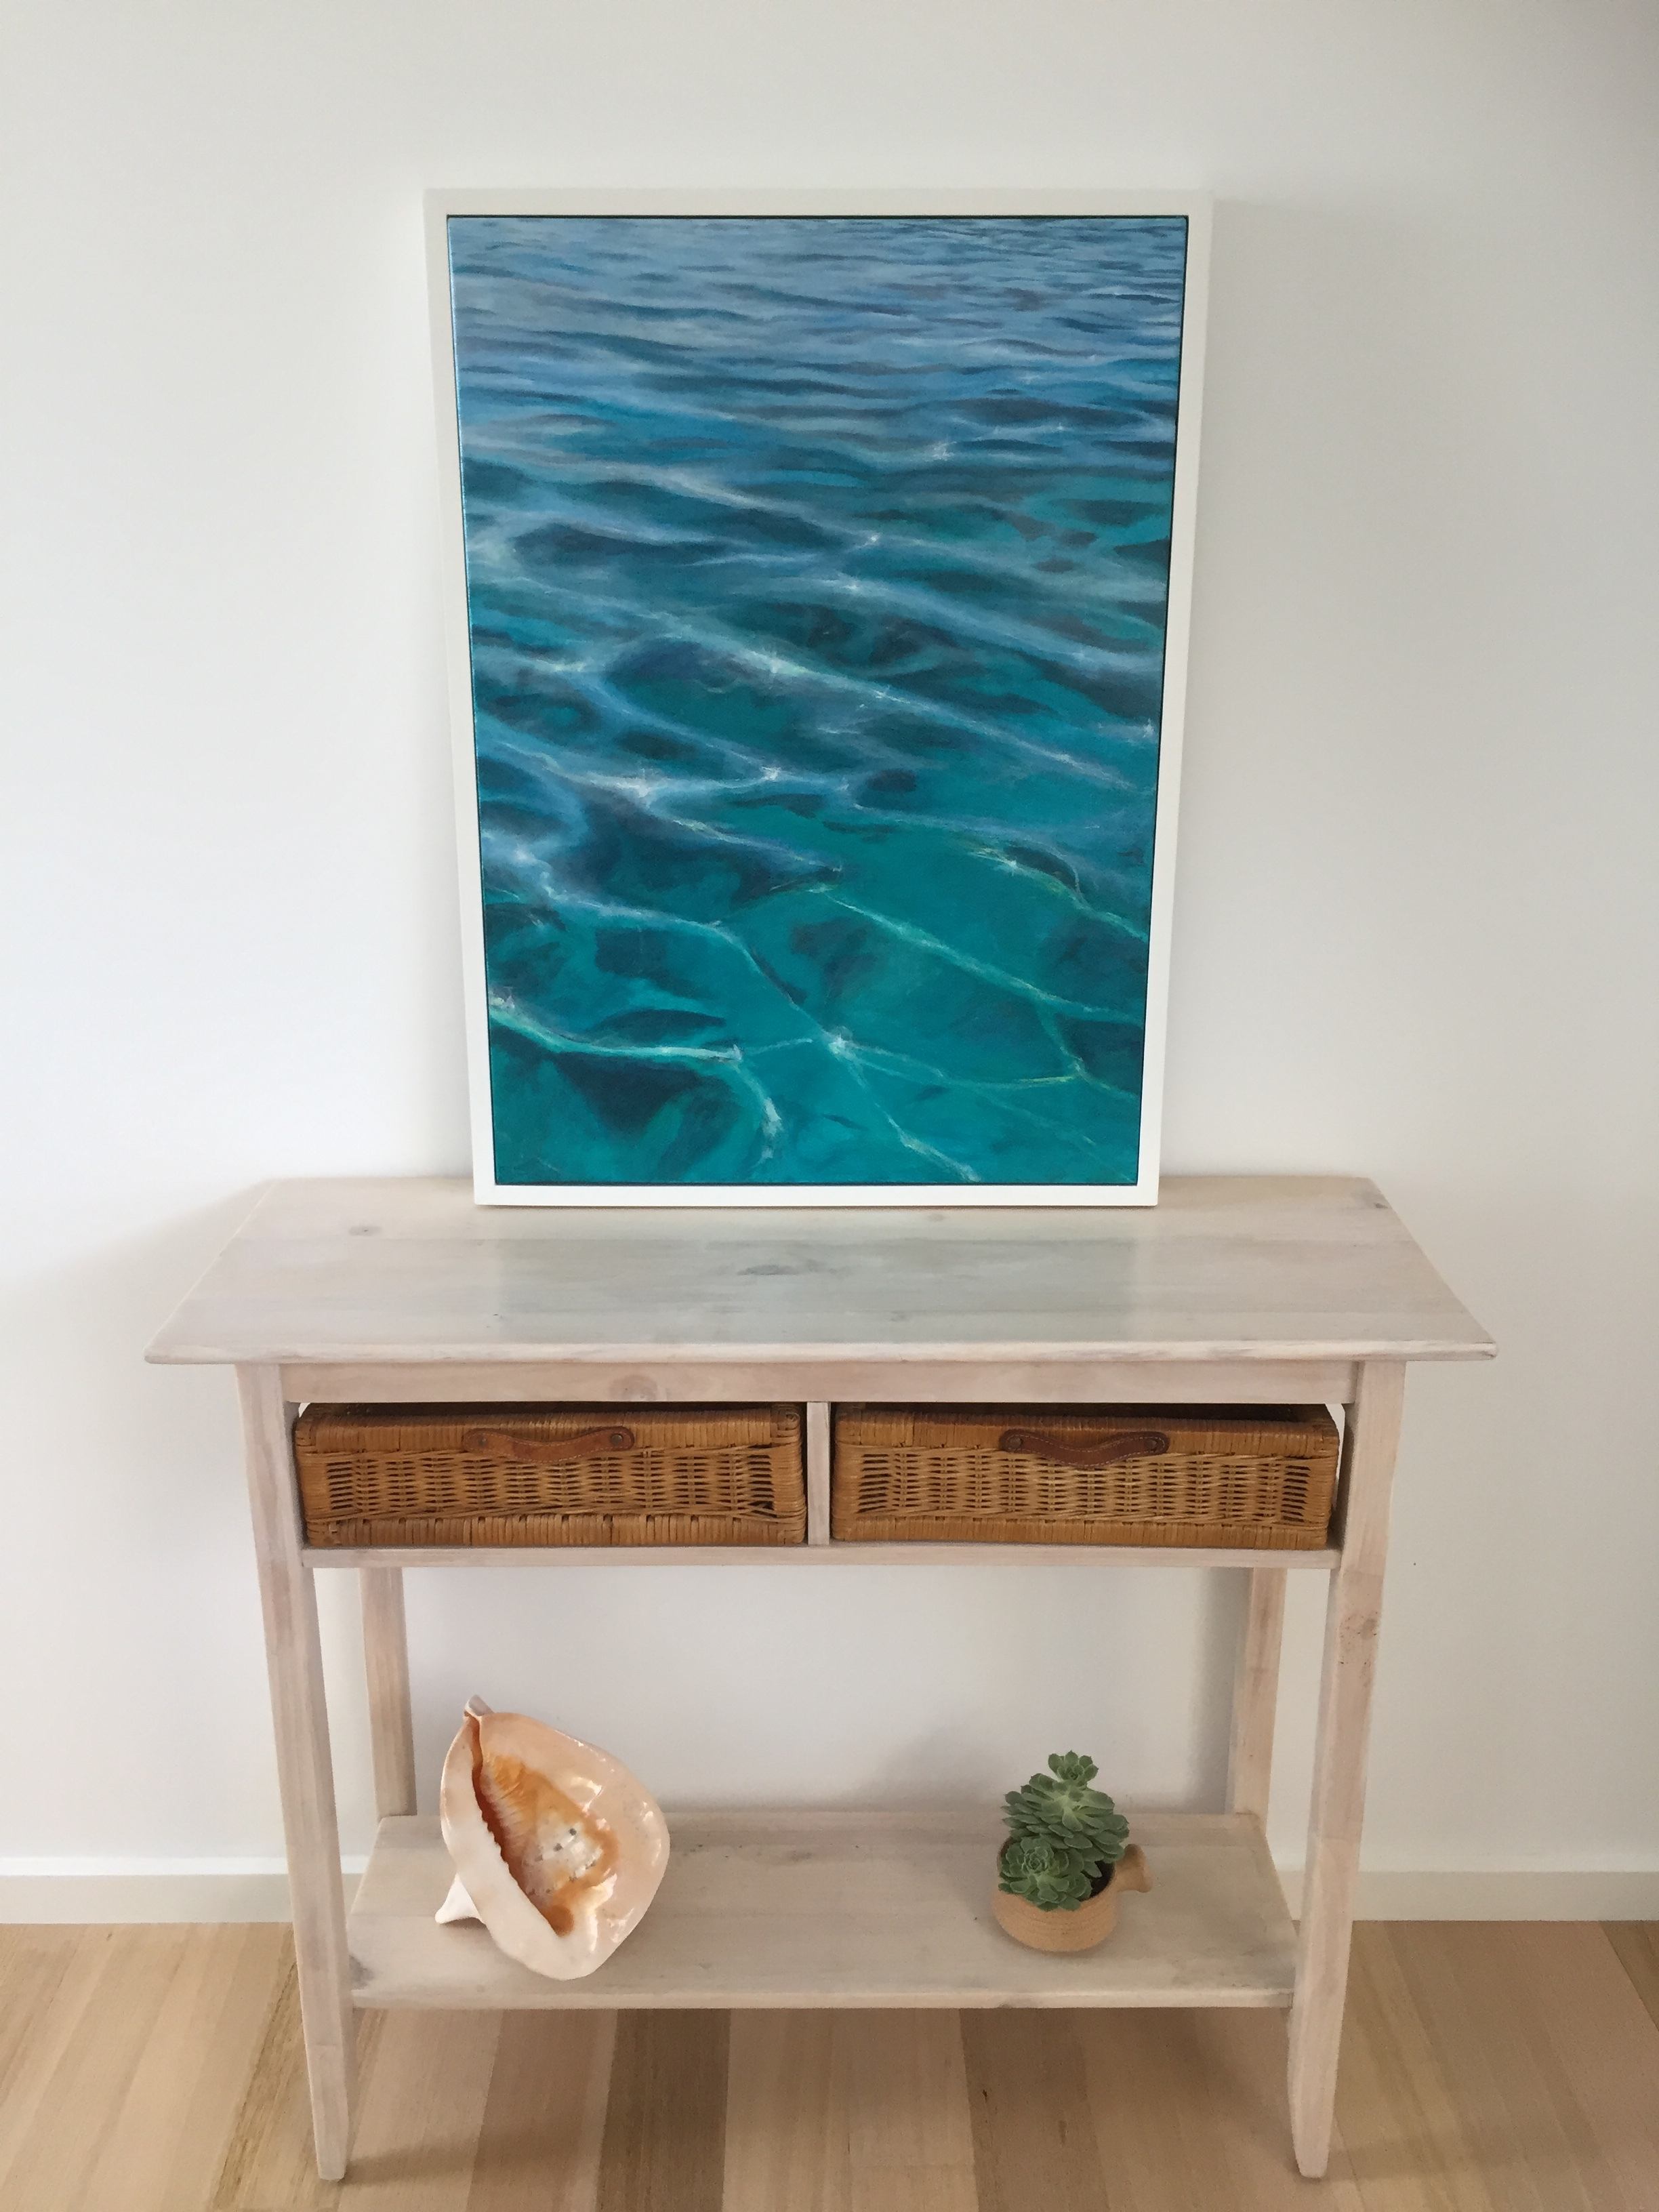 Calm Water - SOLDAcrylic on canvas framed in a custom white frame.